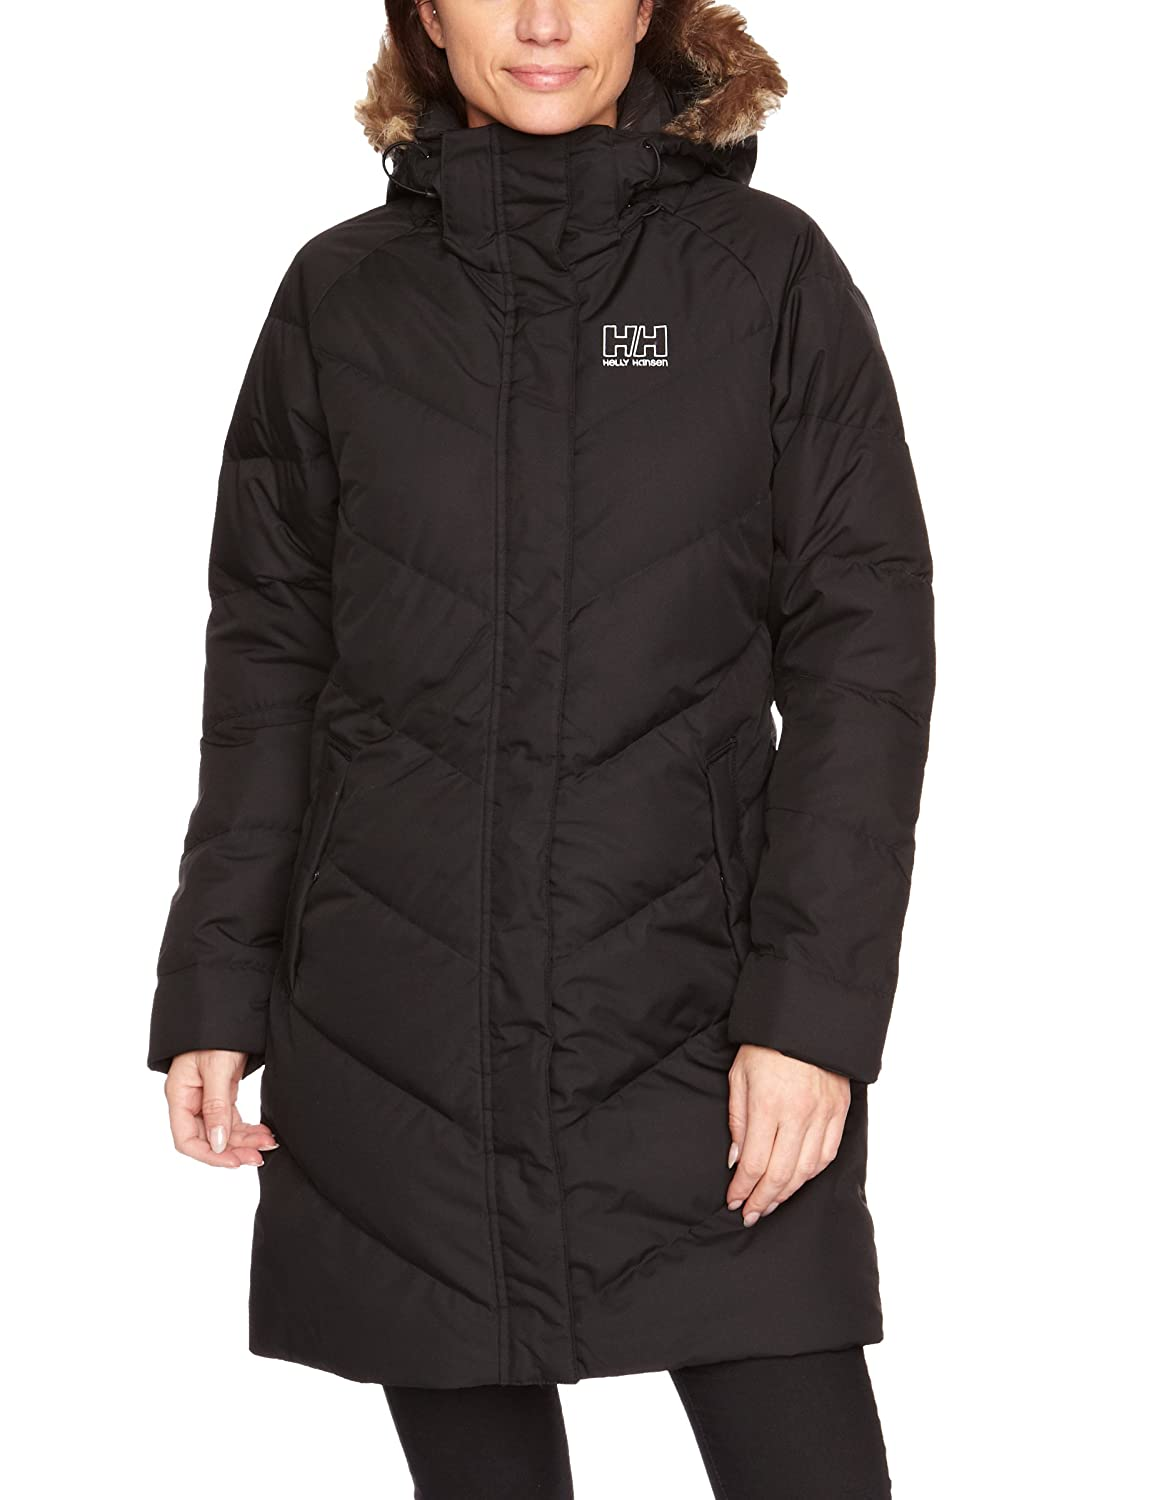 helly hansen women 39 s aden puffy parka jacket ebay. Black Bedroom Furniture Sets. Home Design Ideas